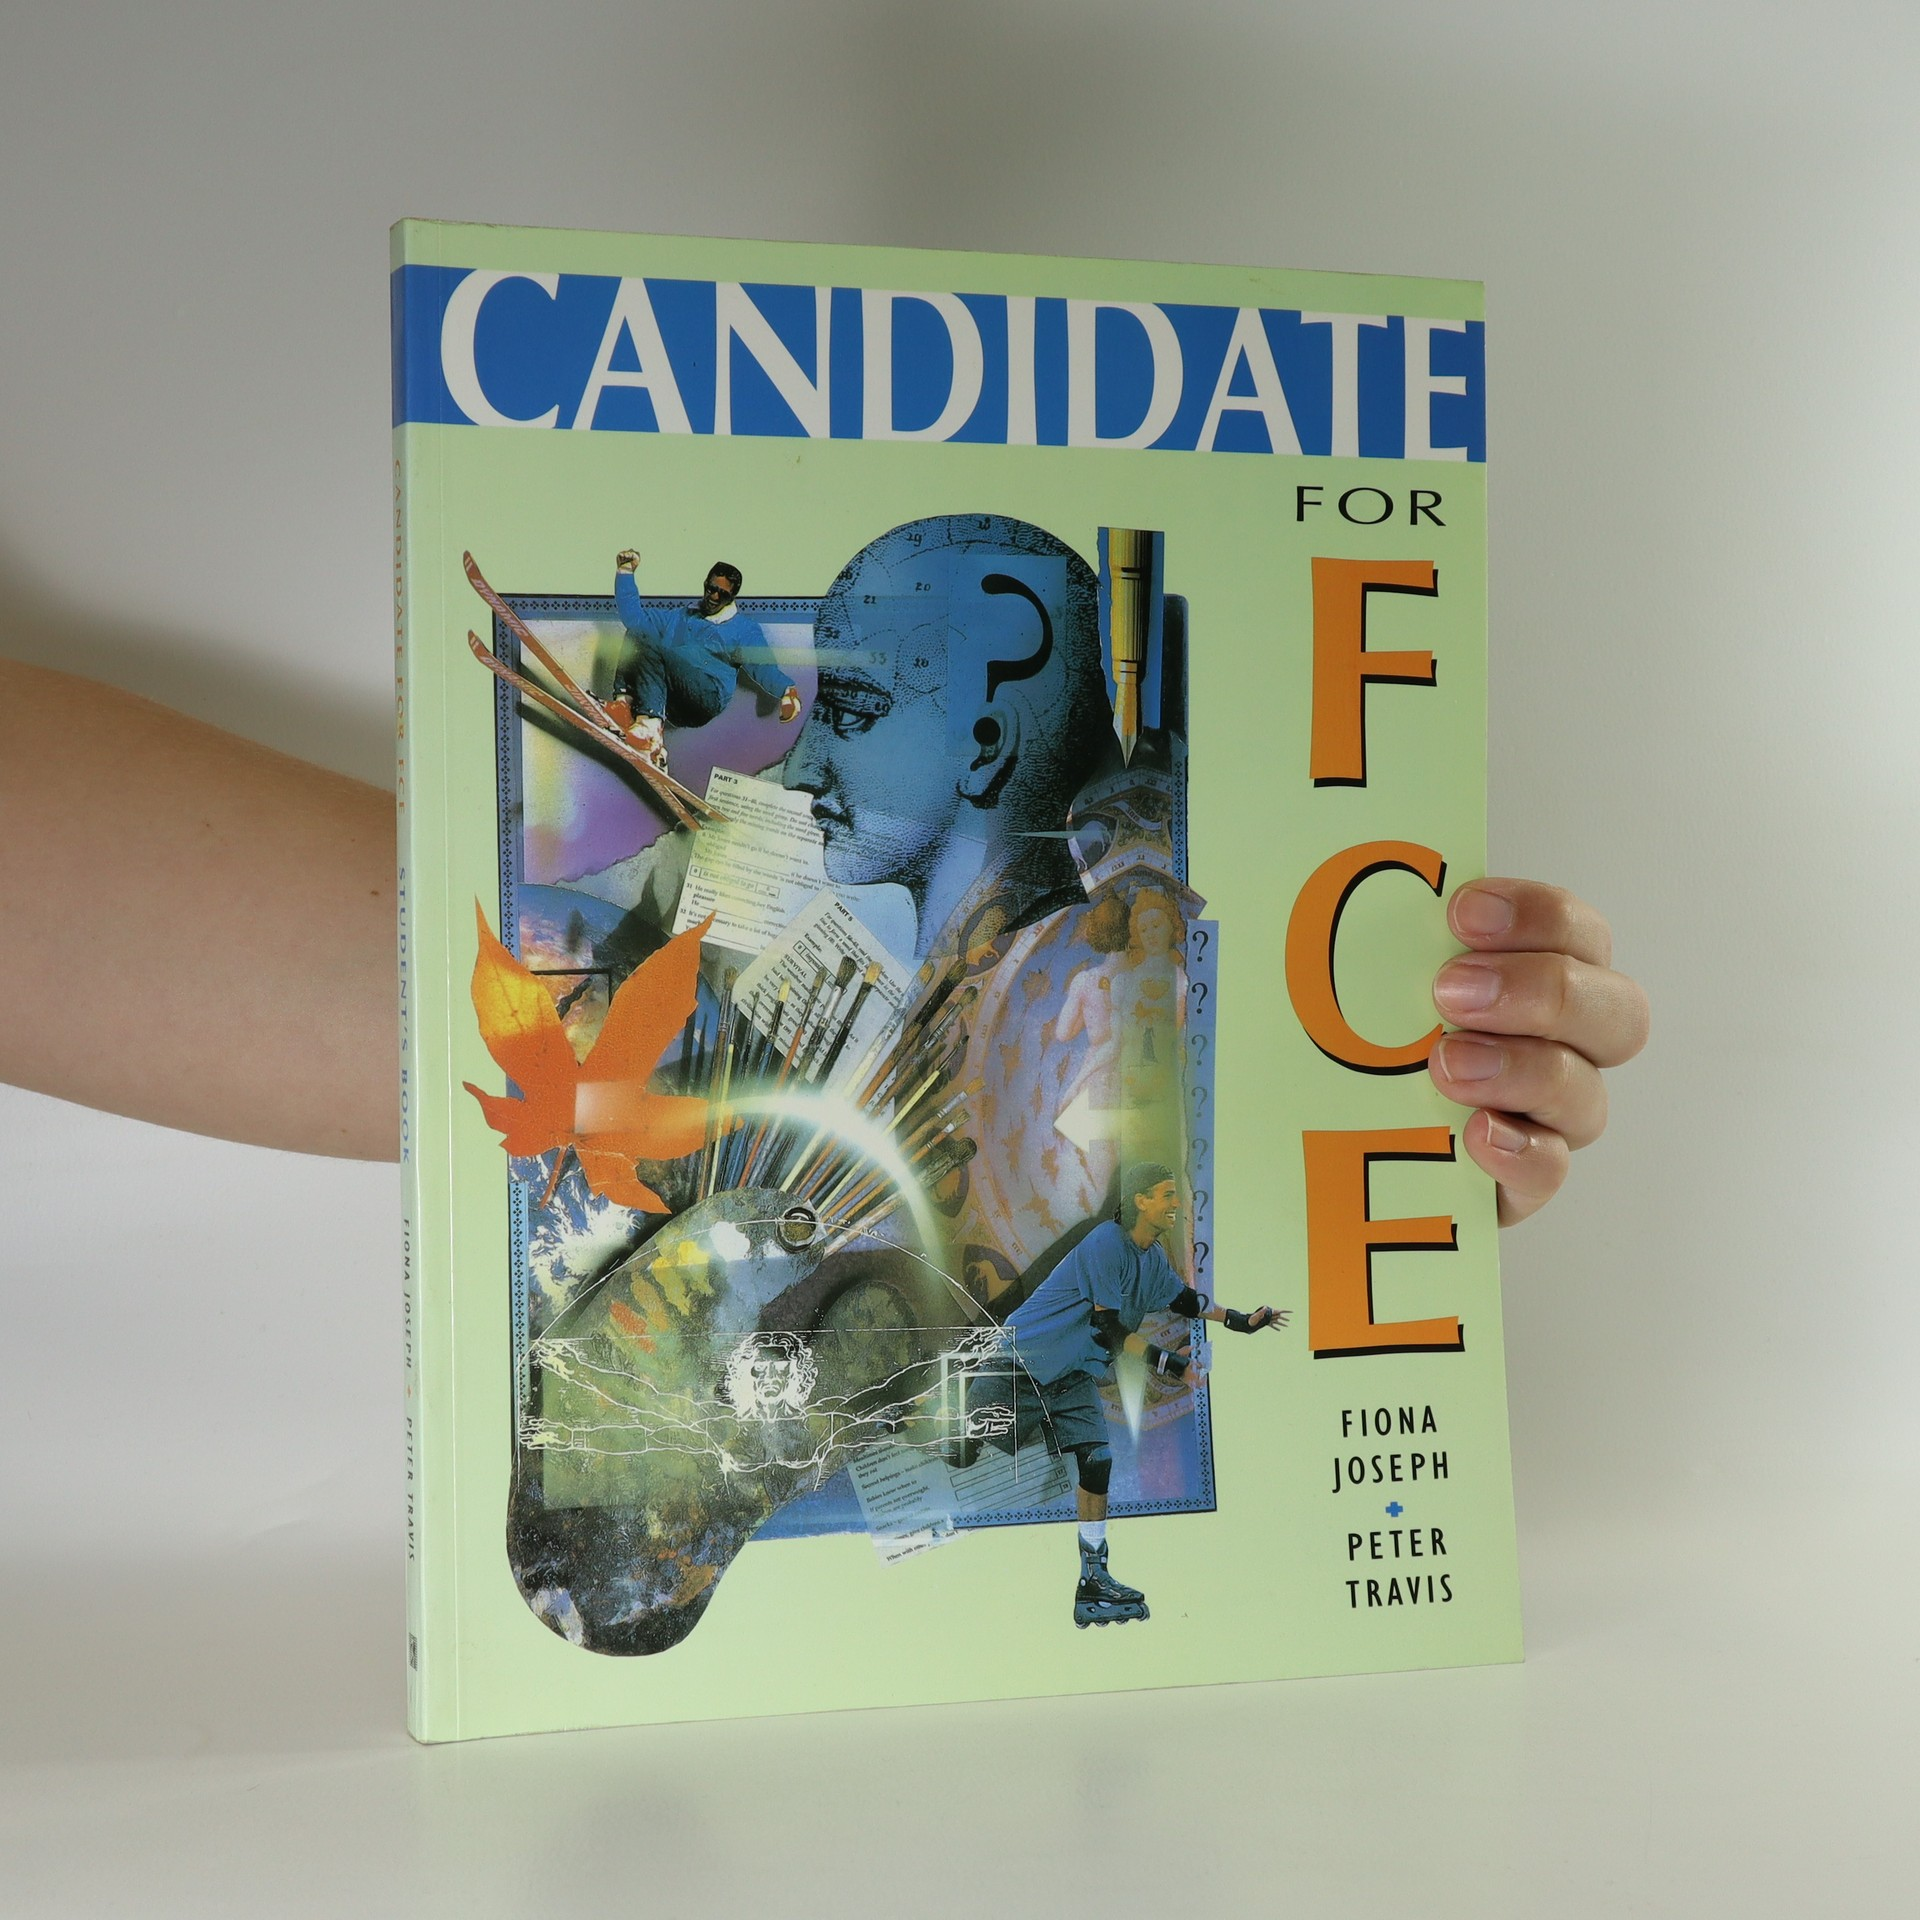 antikvární kniha Candidate for FCE. Student's book, 1997